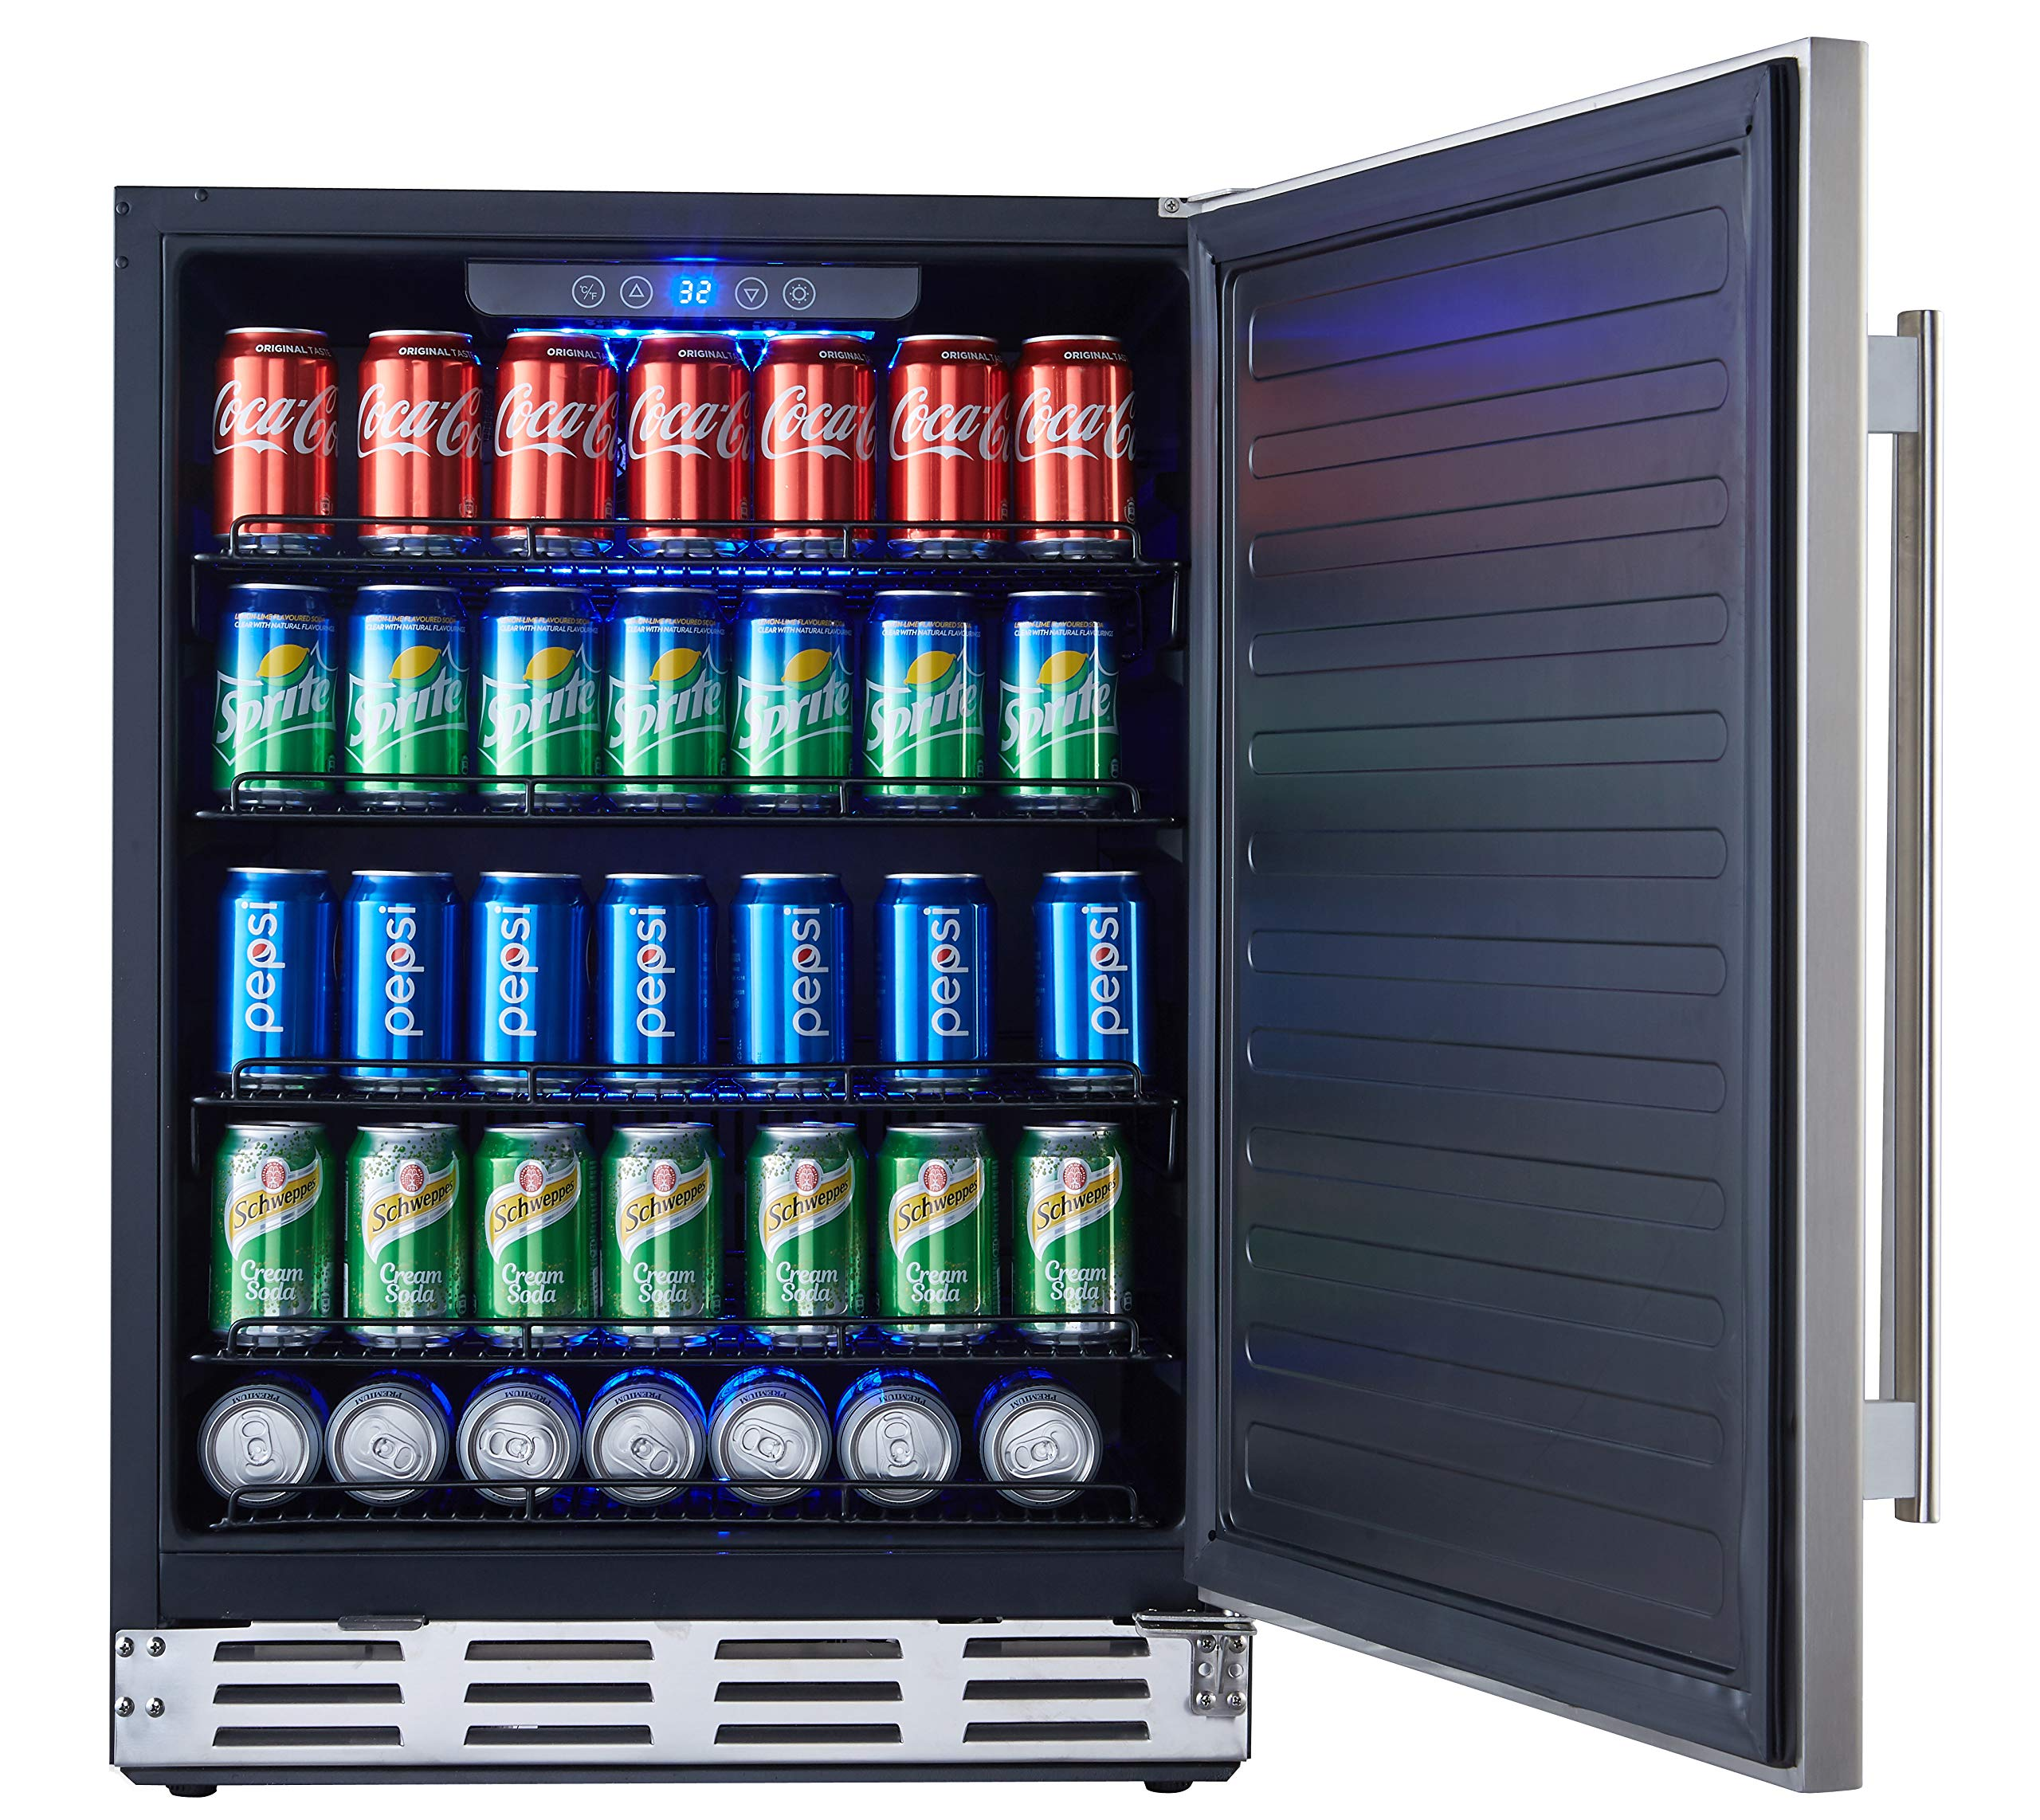 Kalamera 24'' Stainless Steel Beverage Cooler - Soda and Beer Refrigerator - Drinks Fridge for Home and Commercial Use - Chills Drinks at 32-41 Degrees